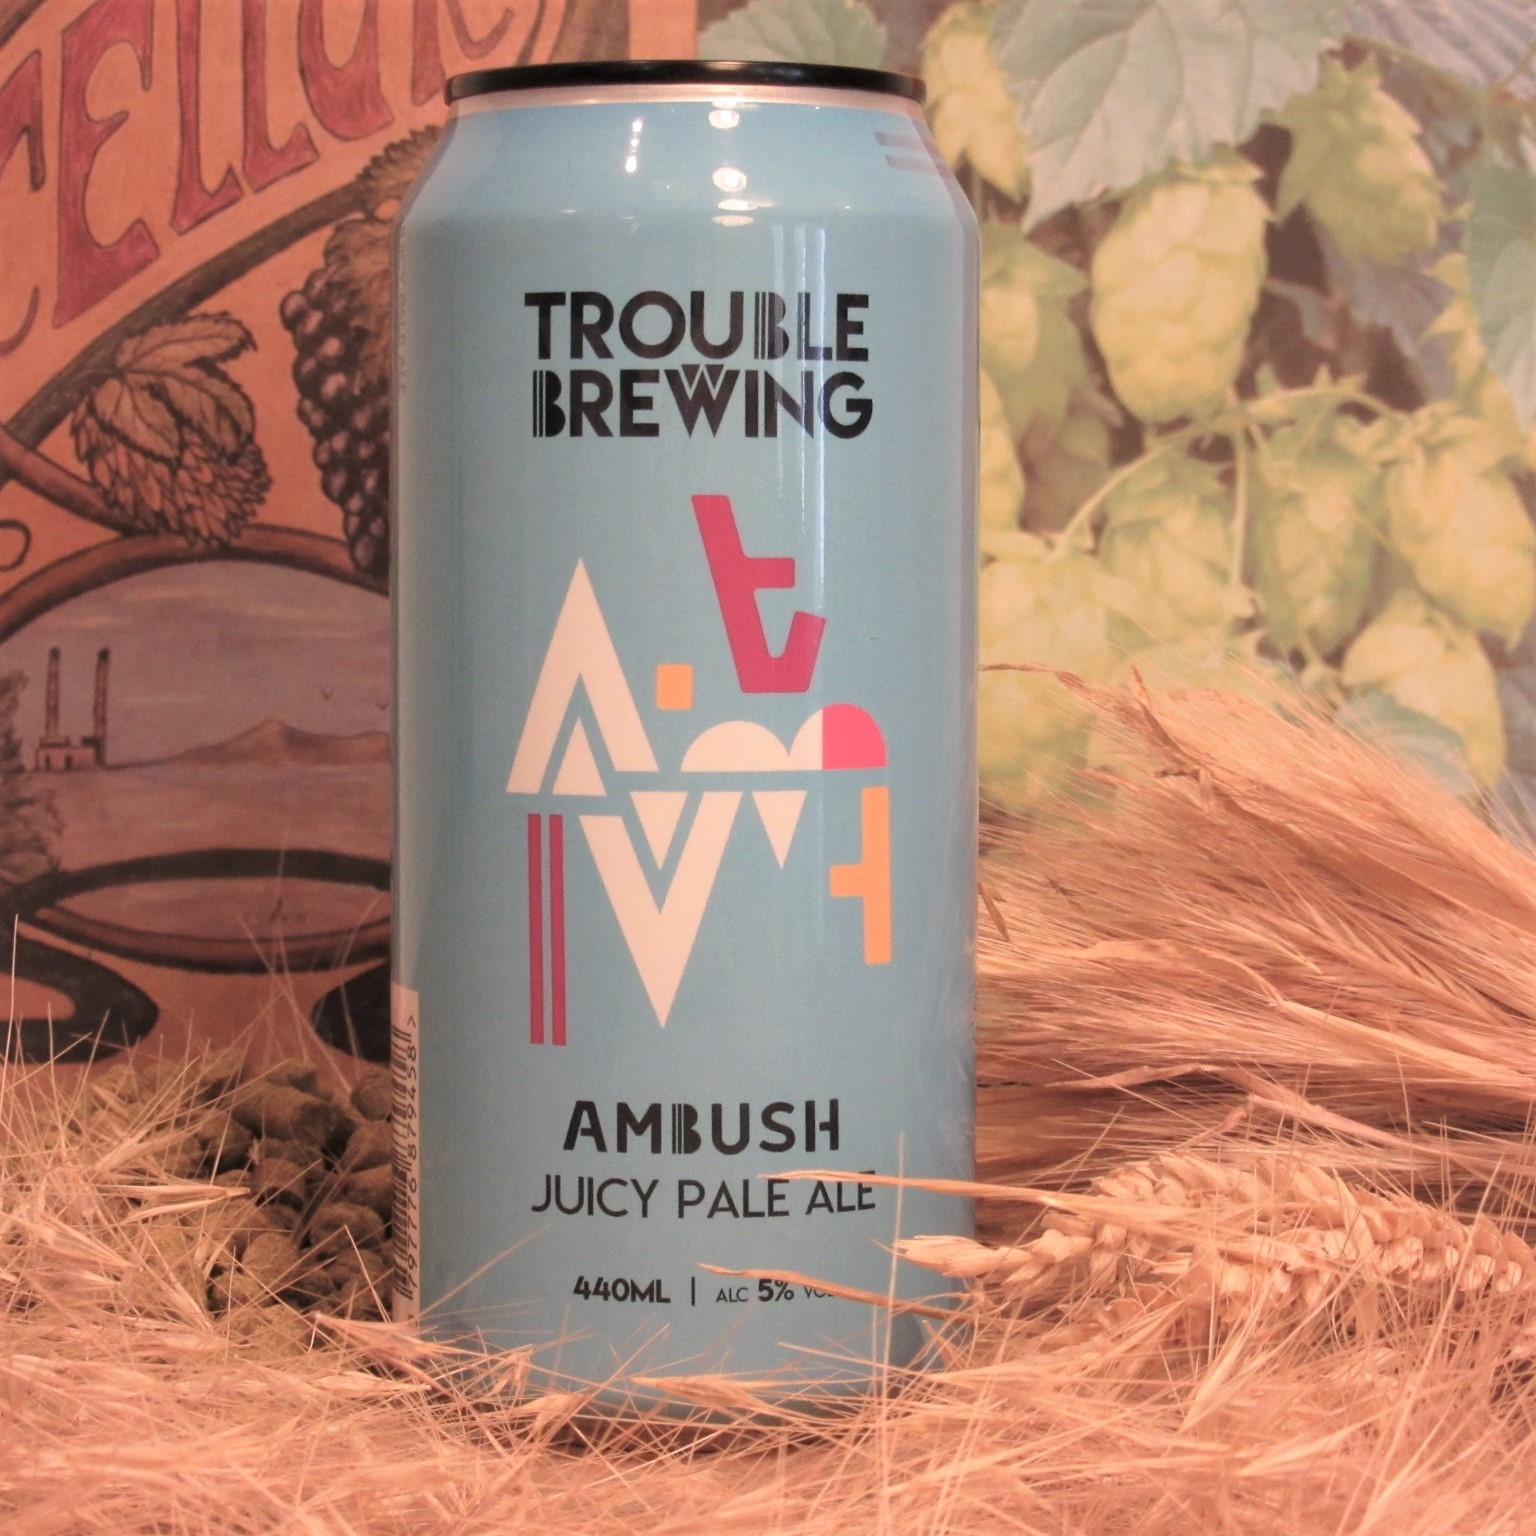 Trouble Brewing Ambush Juicy Pale Ale